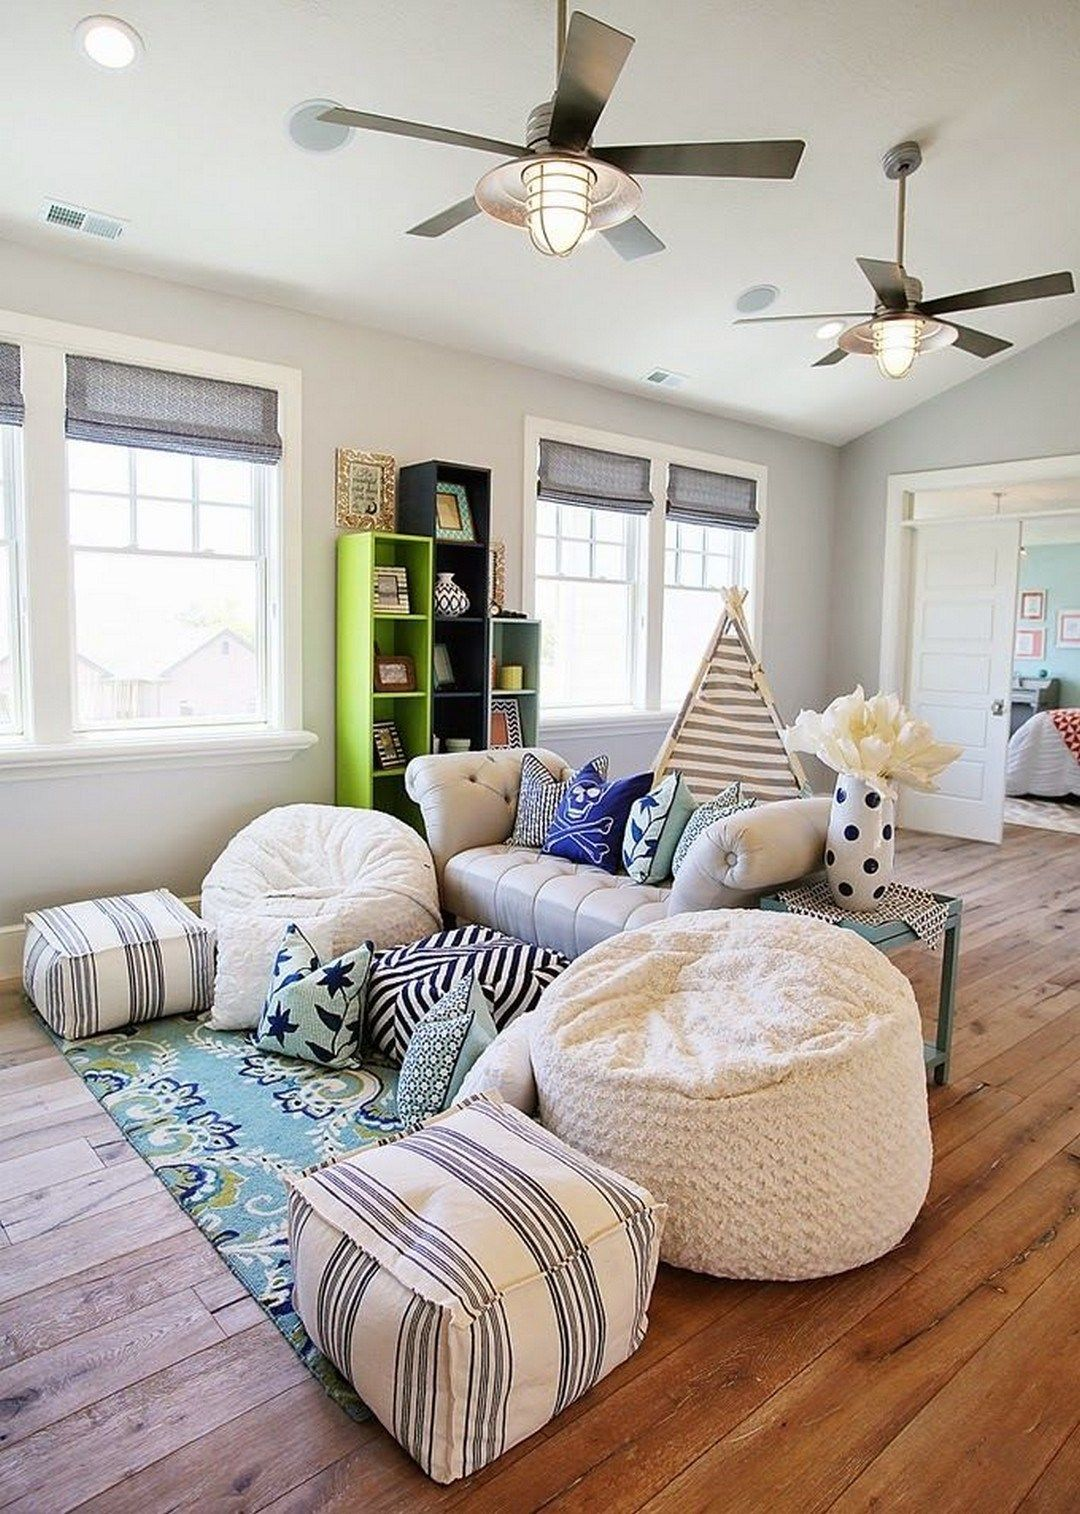 Cool Living Room Ideas: 65 Cool Hangout Room Design For Your House (7)